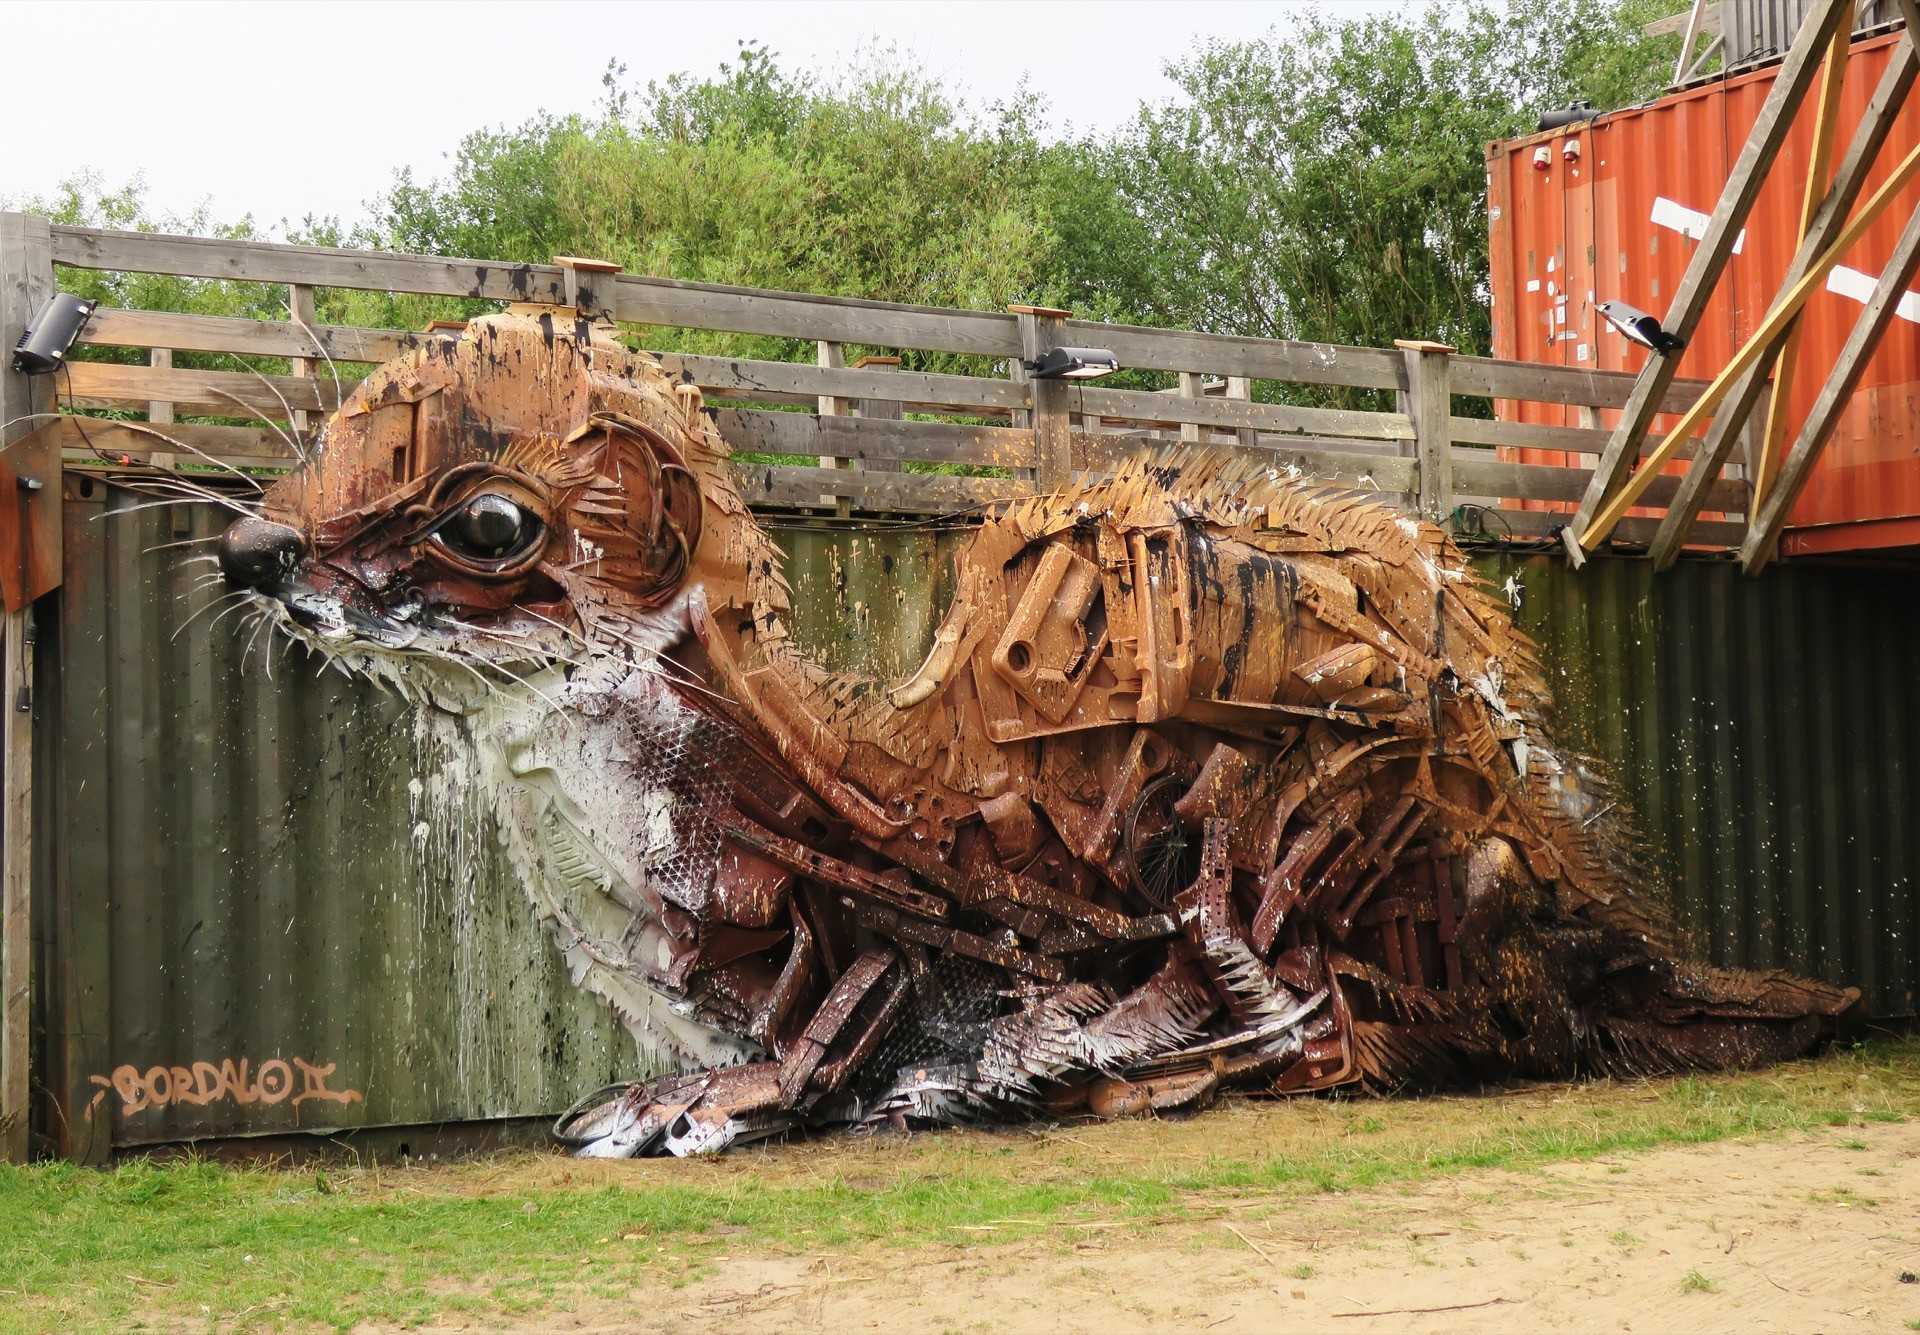 5- Bordalo II - Germany